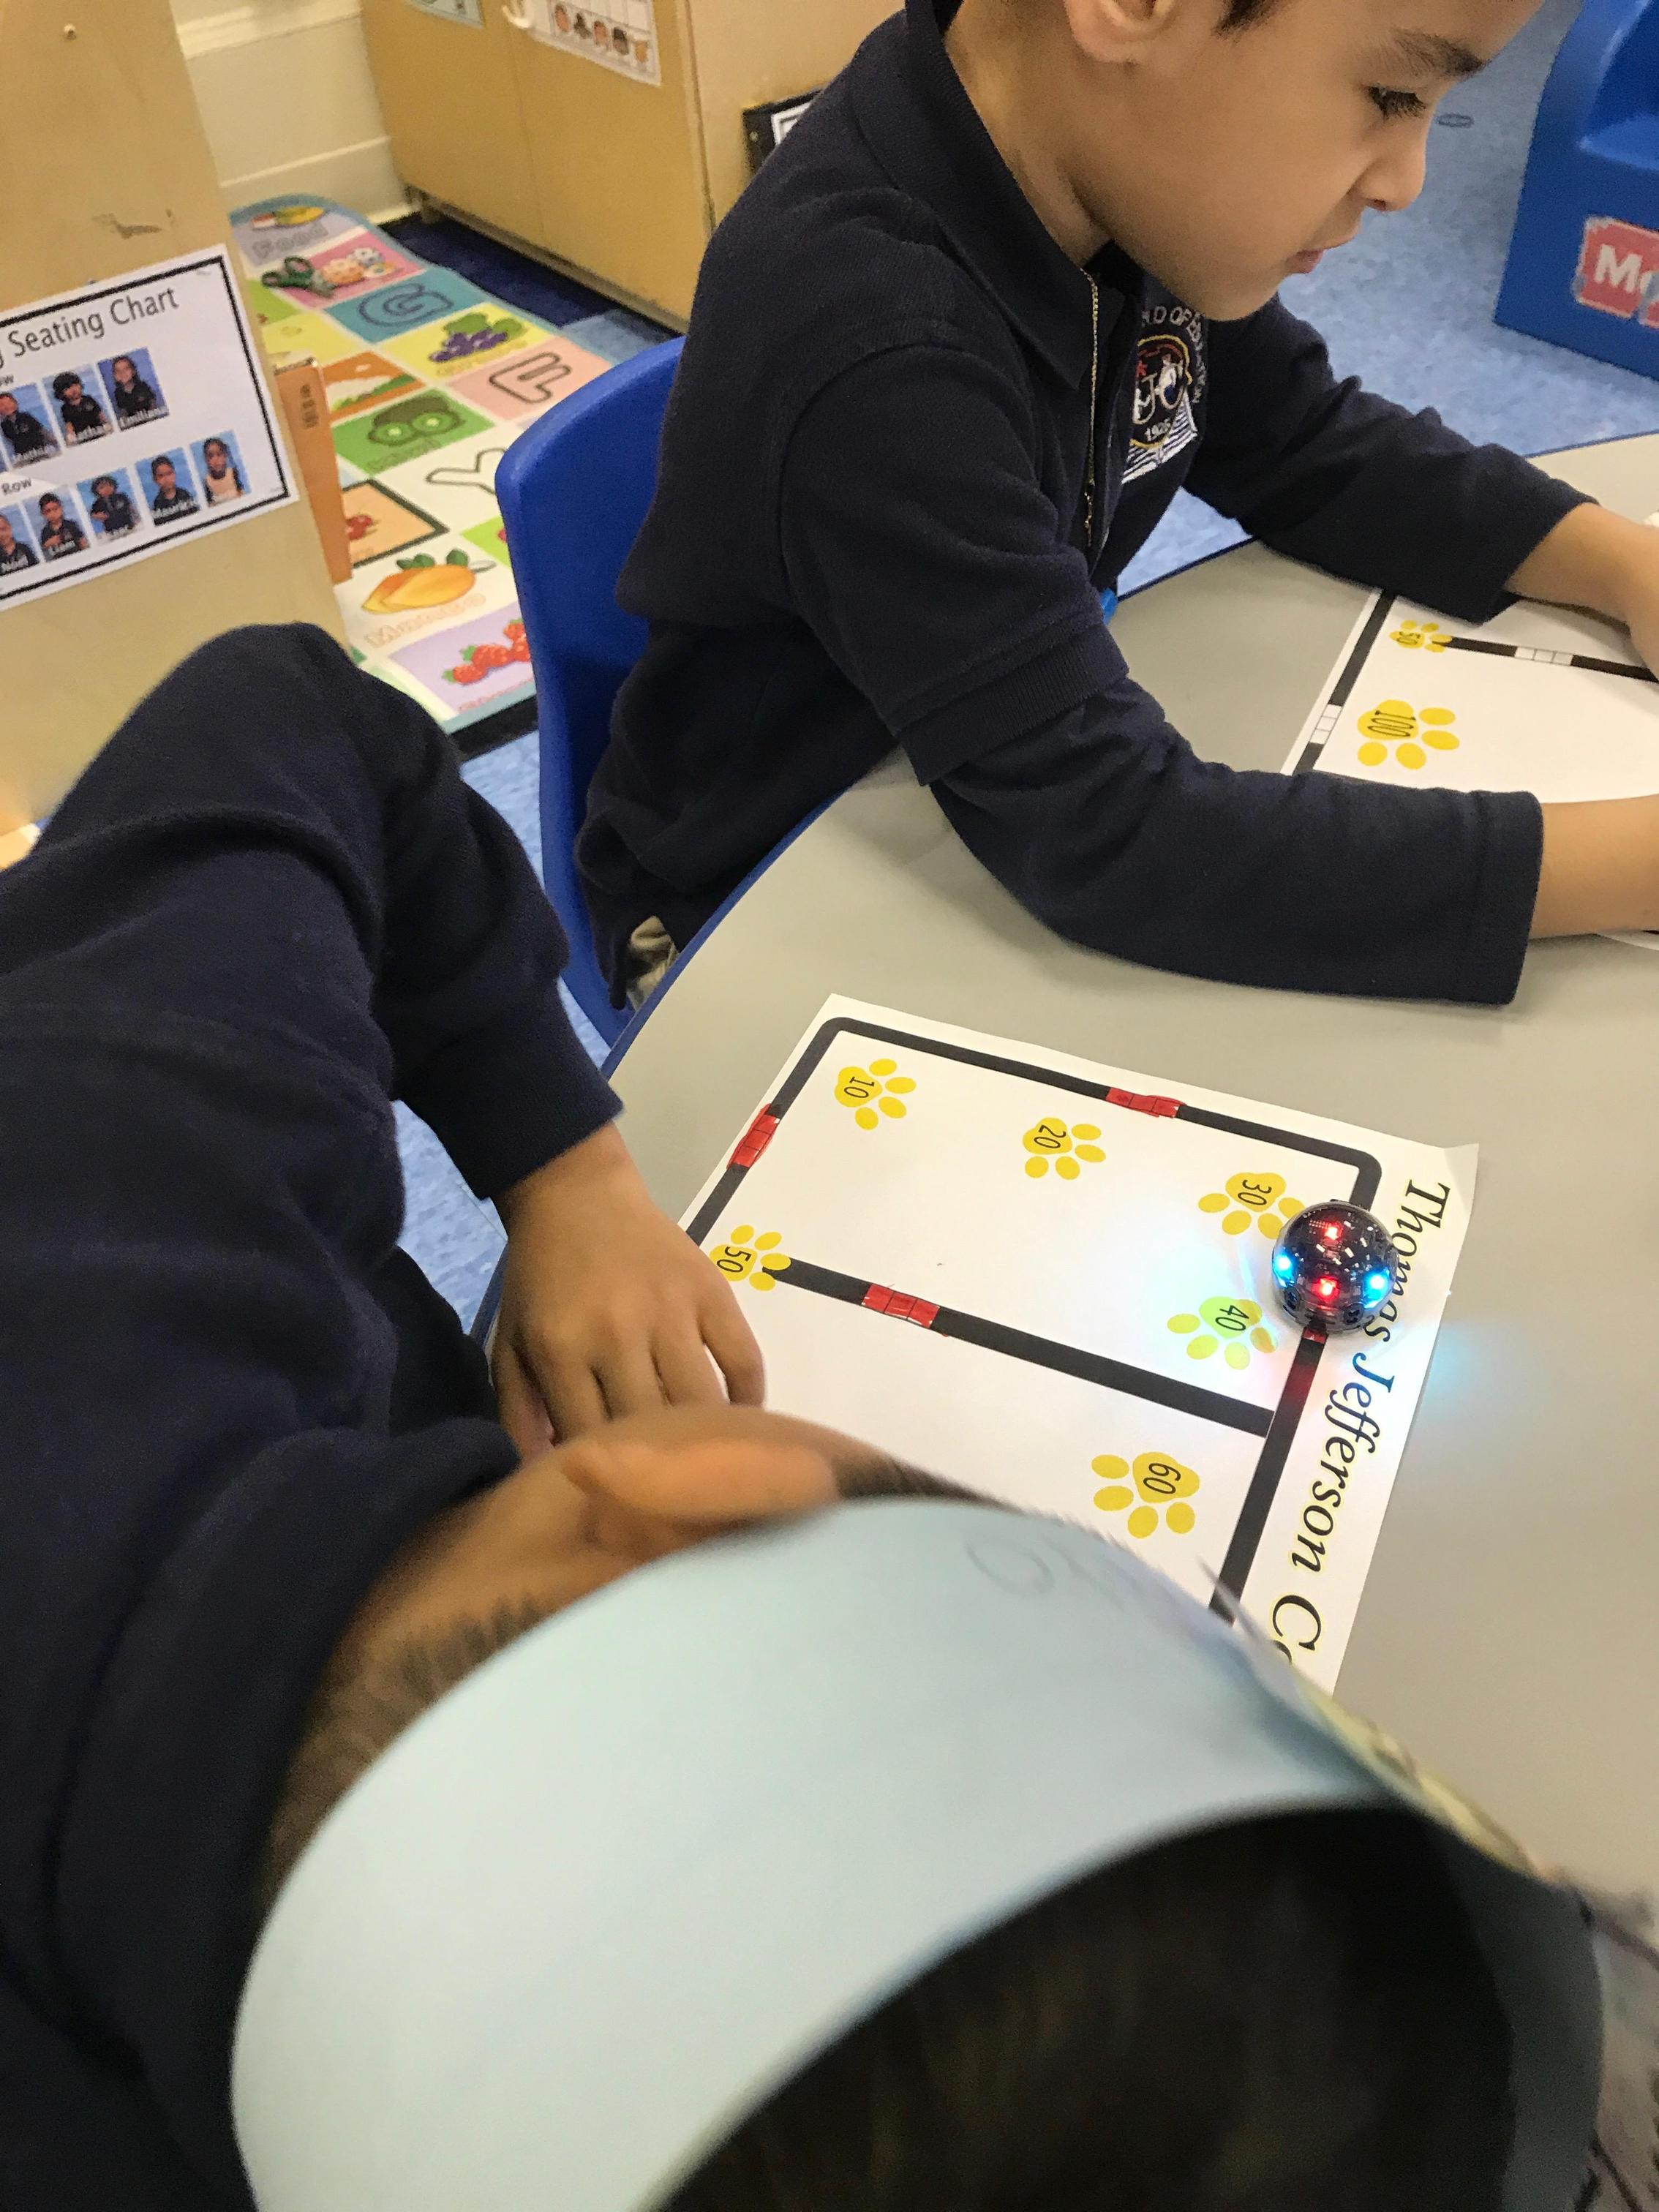 student at the table working with Ozobot